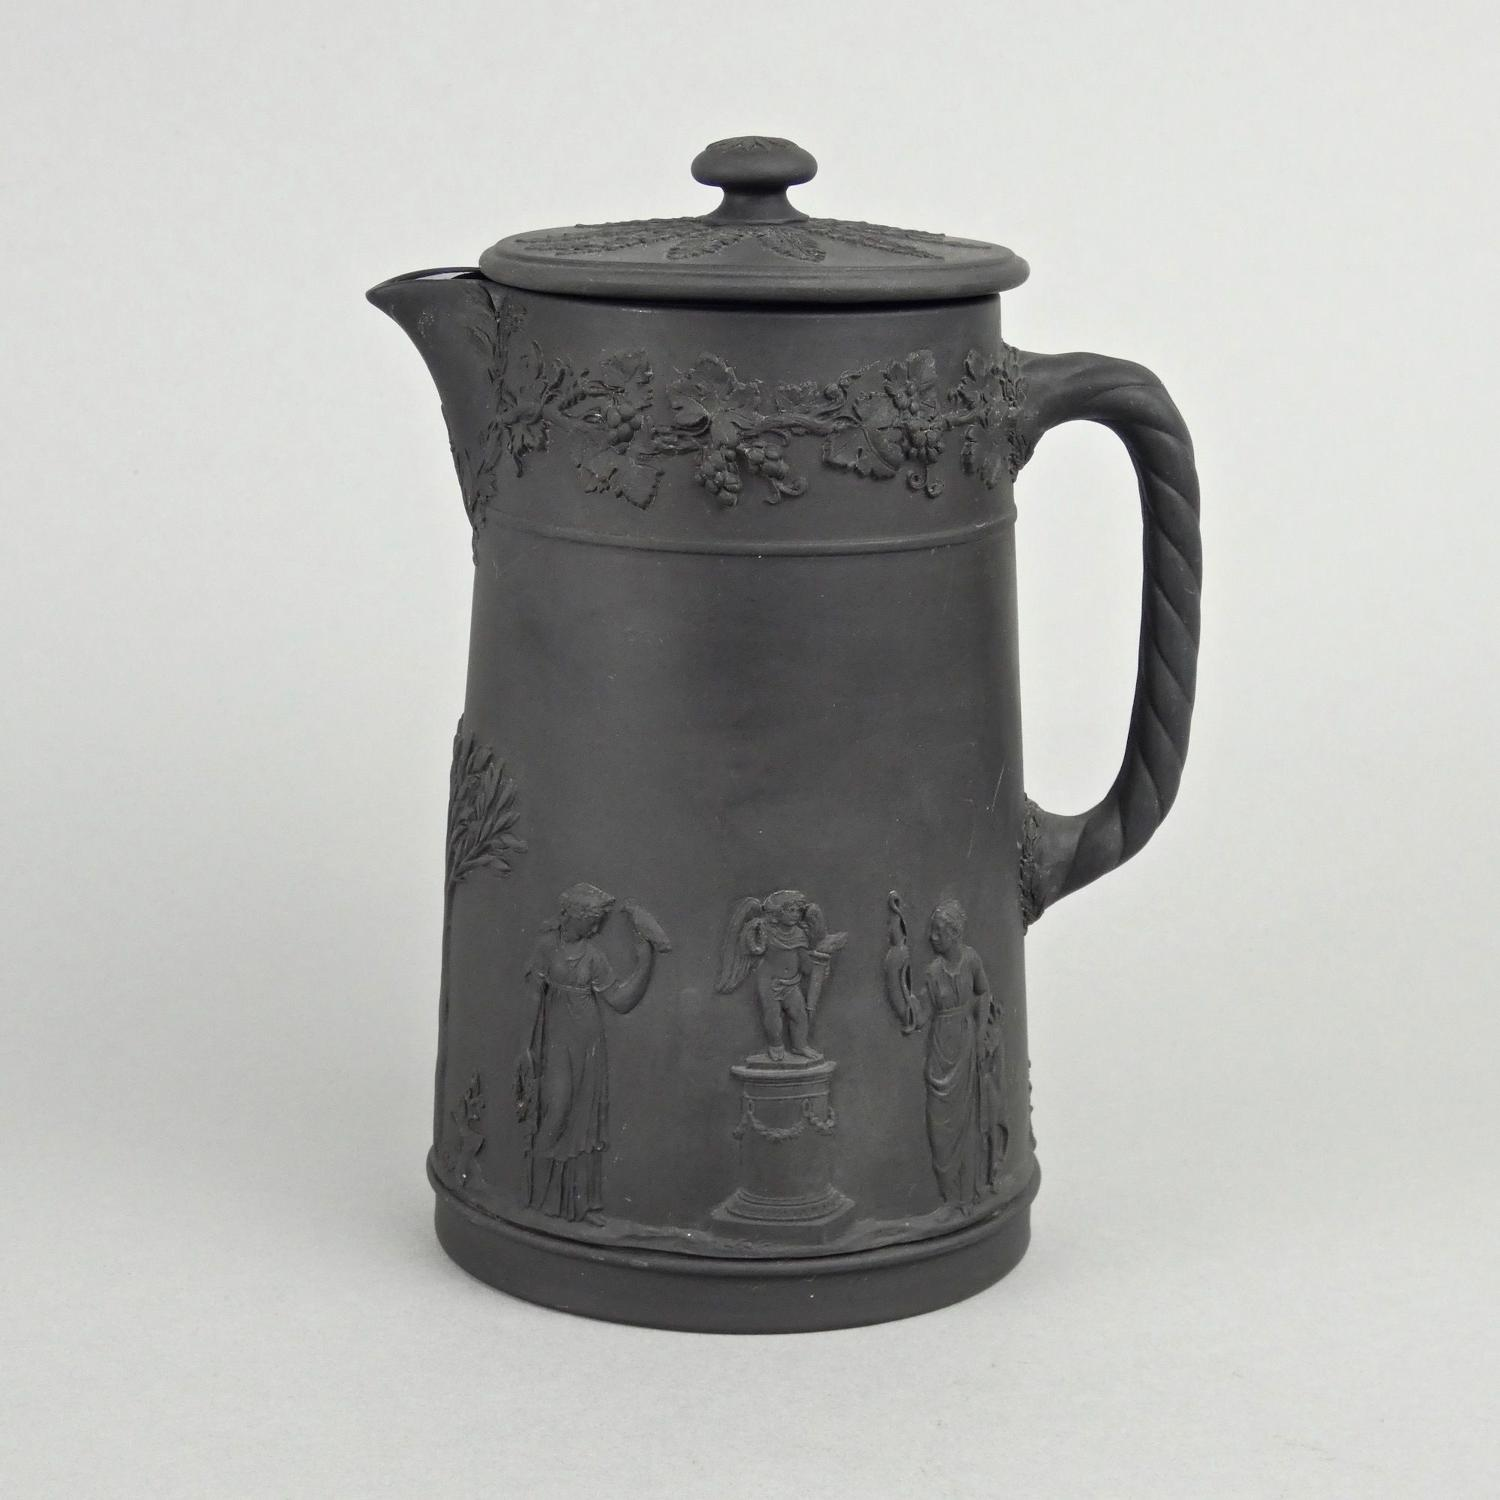 Wedgwood basalt hot water jug